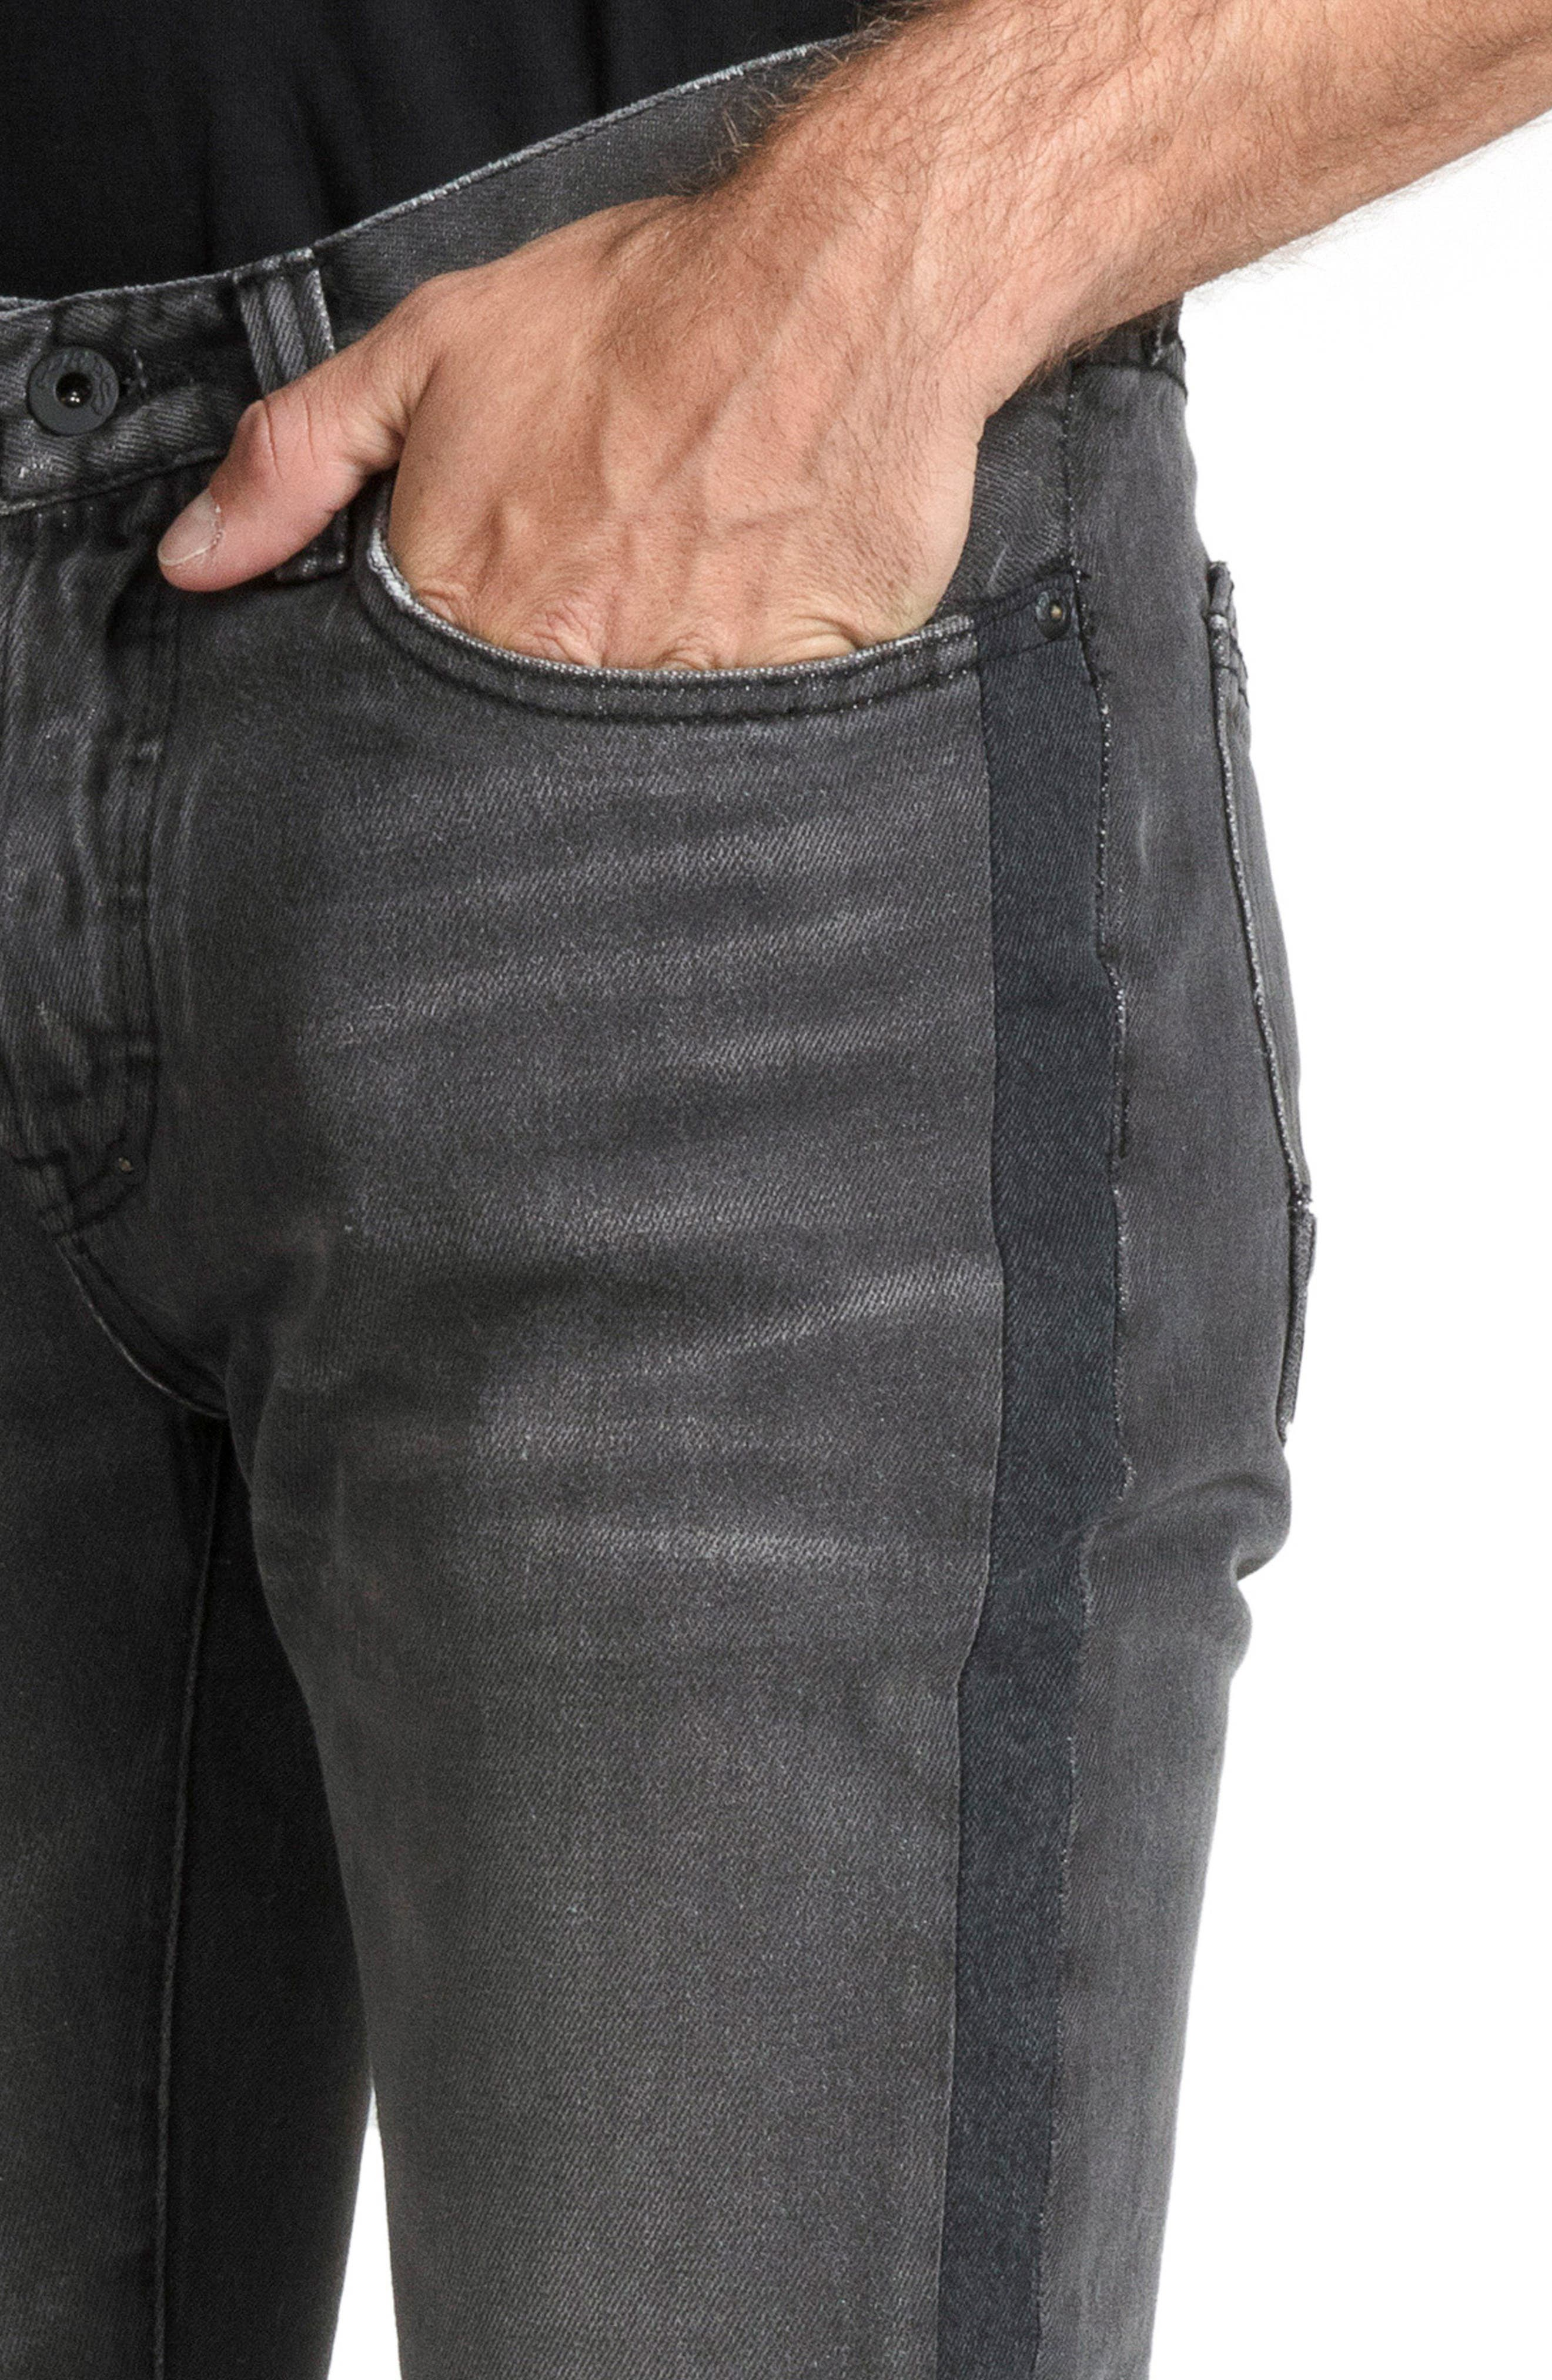 Le Sabre Slim Fit Jeans,                             Alternate thumbnail 4, color,                             ABHORRENT